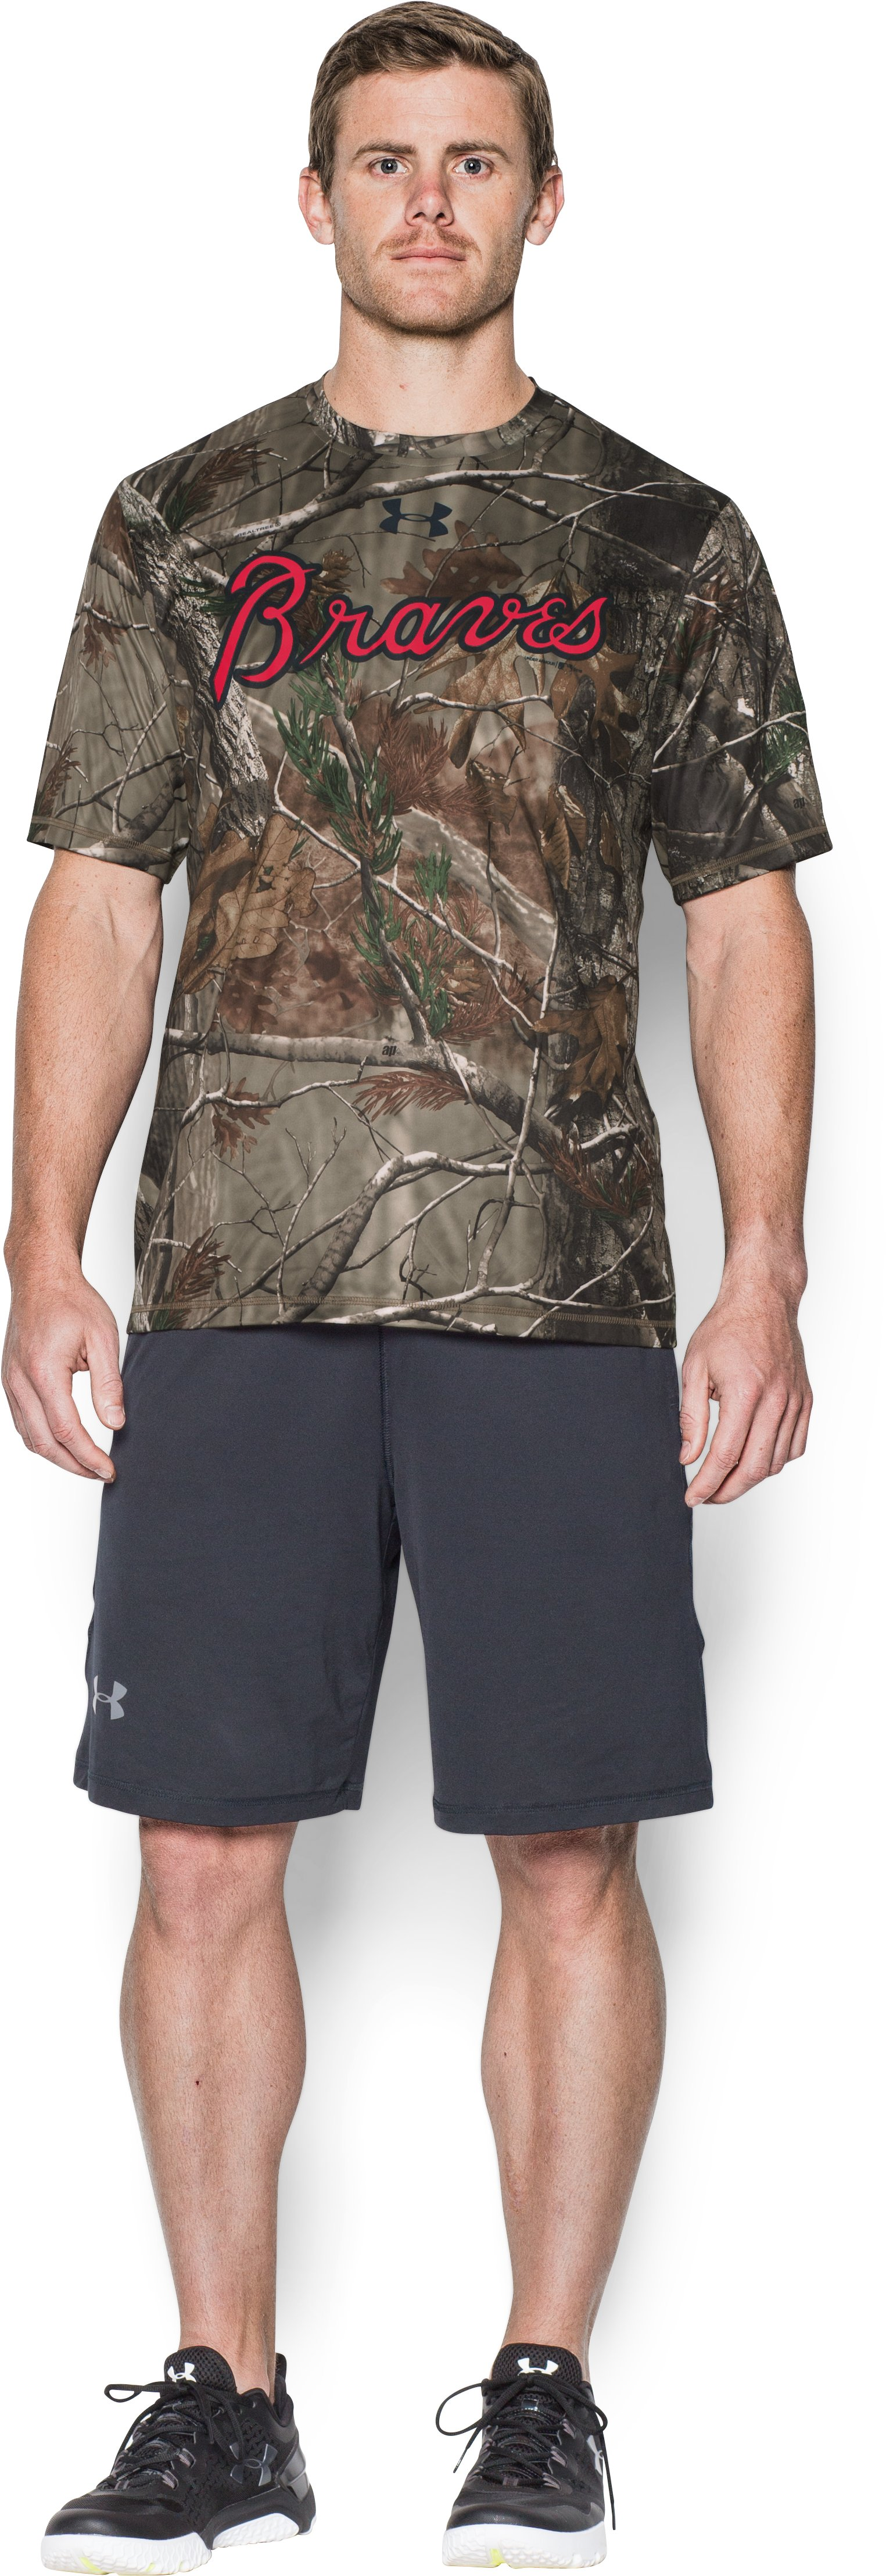 Men's Atlanta Braves Camo T-Shirt, Forest Green